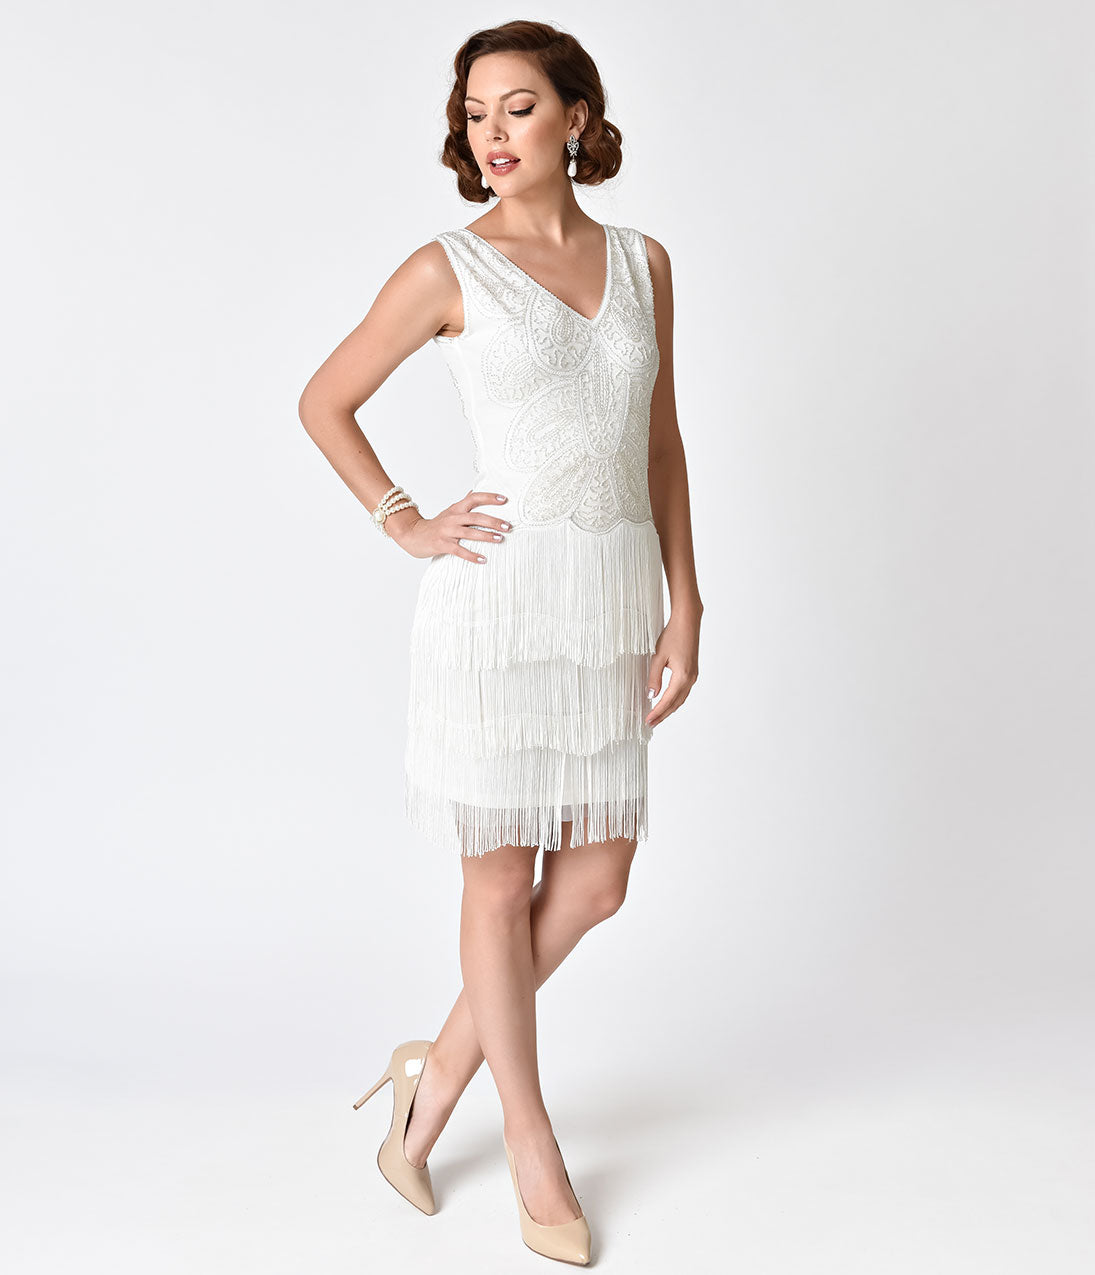 1920s Wedding Dresses- Art Deco Wedding Dress, Gatsby Wedding Dress Unique Vintage 1920s Style White Beaded Tiered Fringe Emile Cocktail Dress $47.00 AT vintagedancer.com